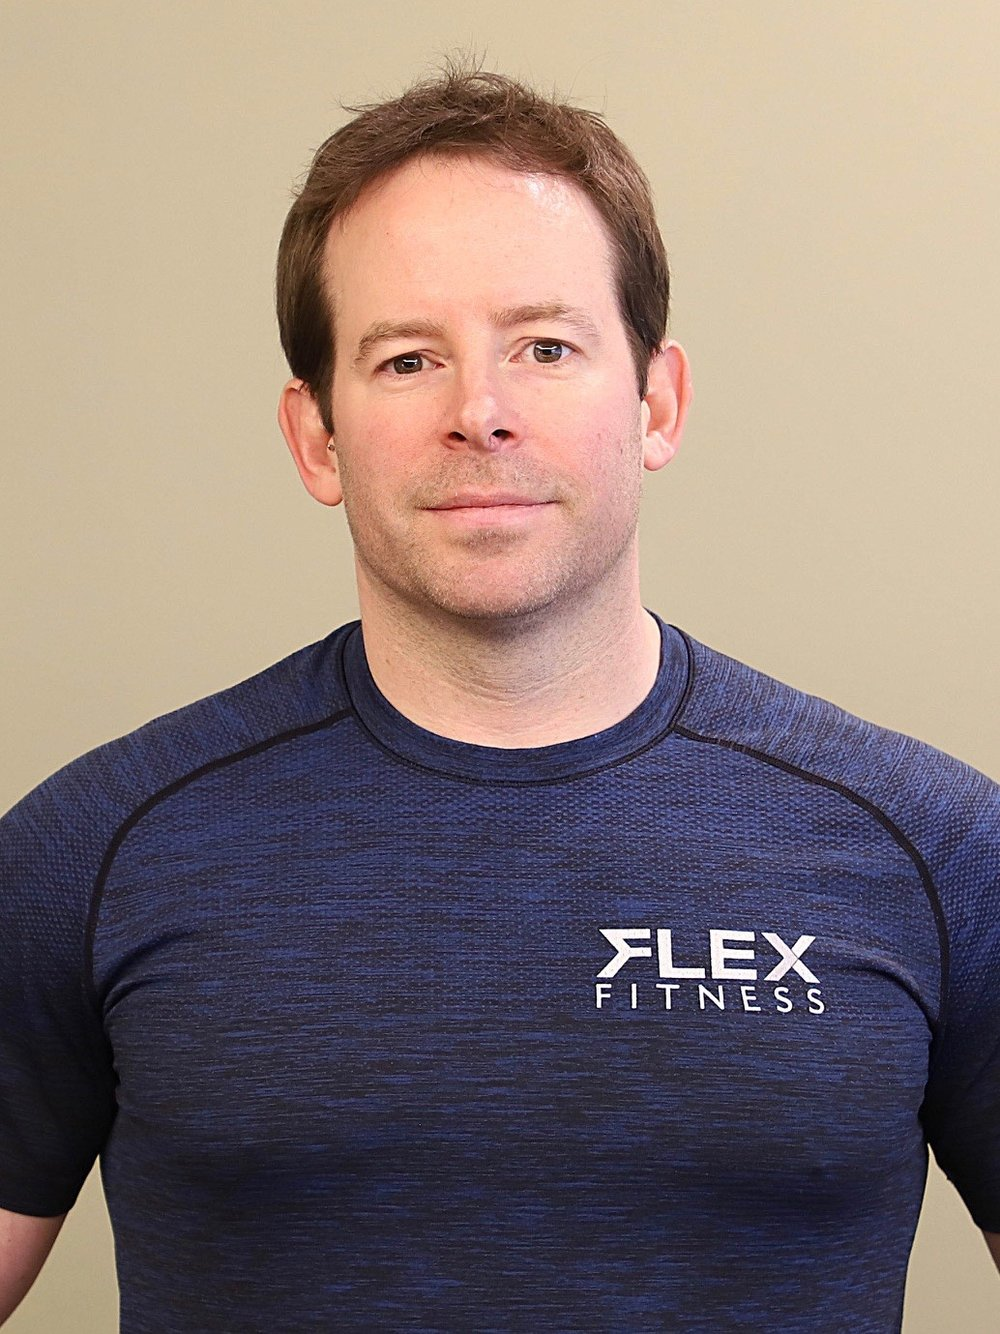 Flex Fitness Winnipeg Alistair Profile.jpg